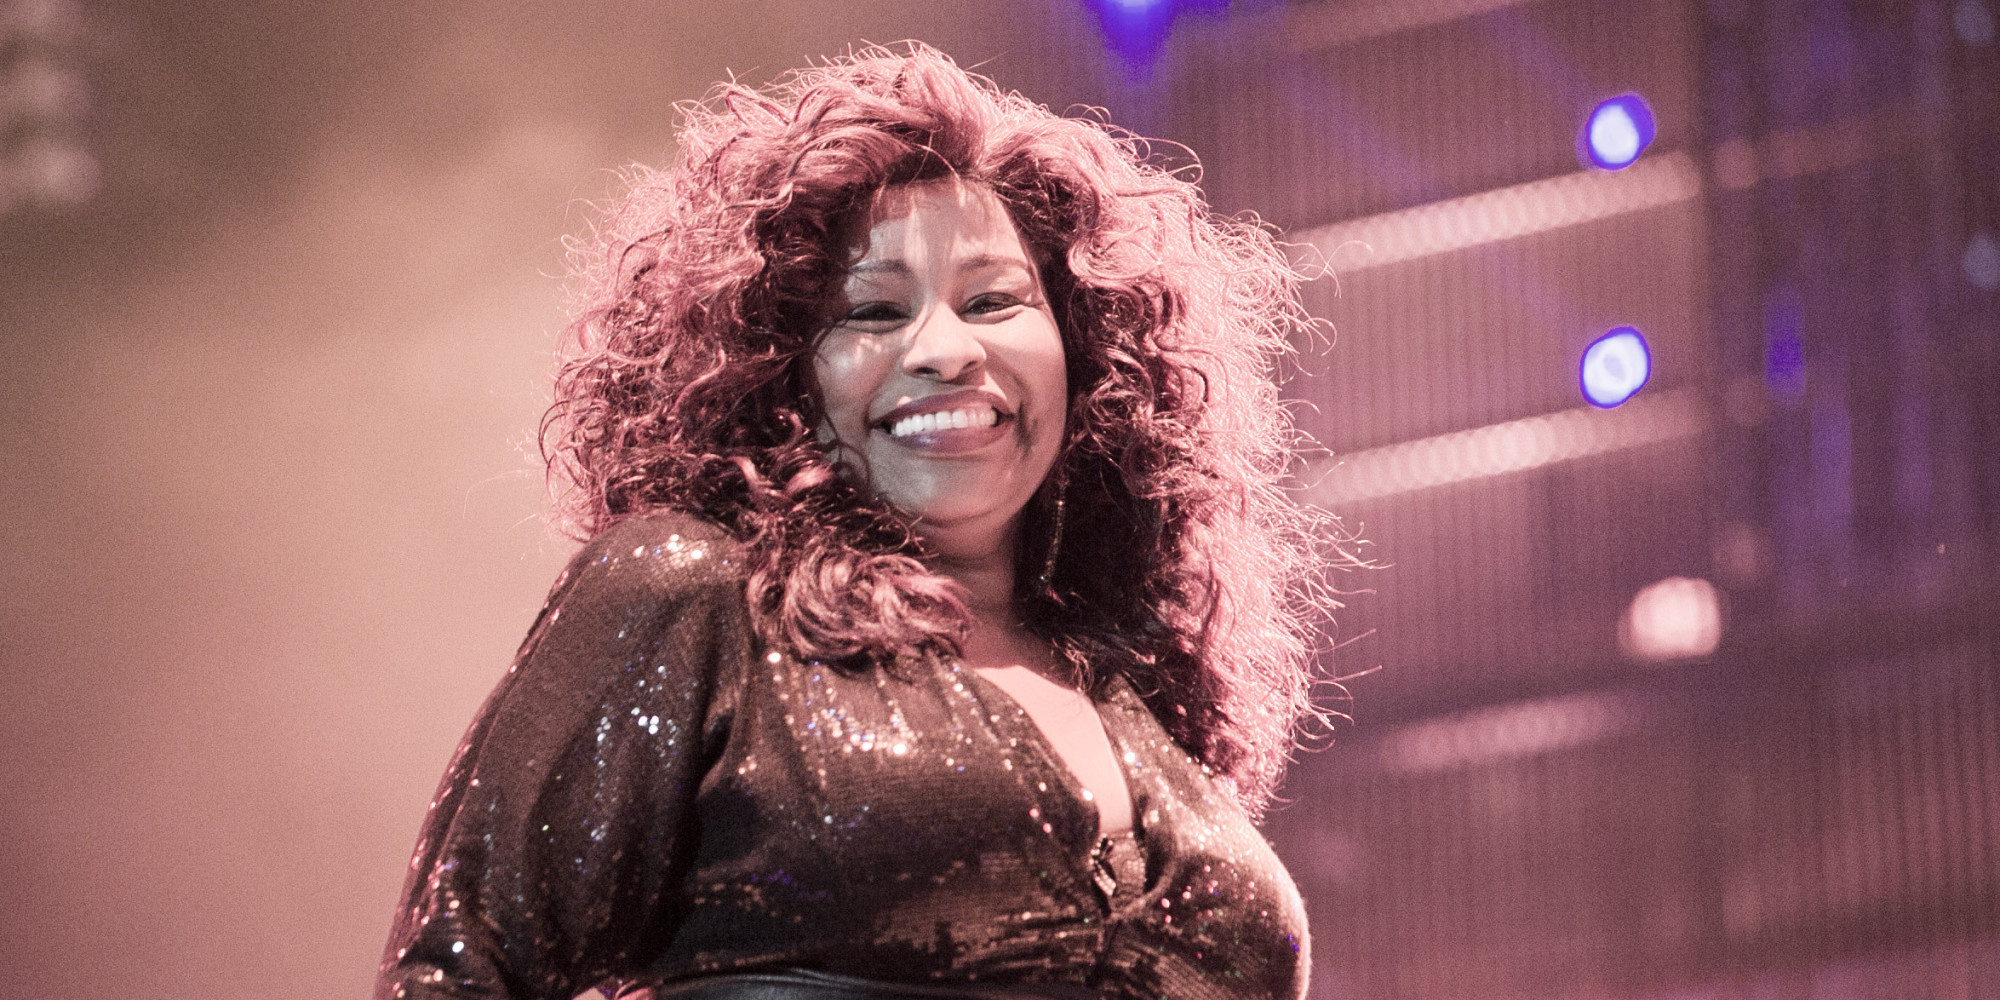 Mirror uk reports chaka khan takes a pause then at a volume barely